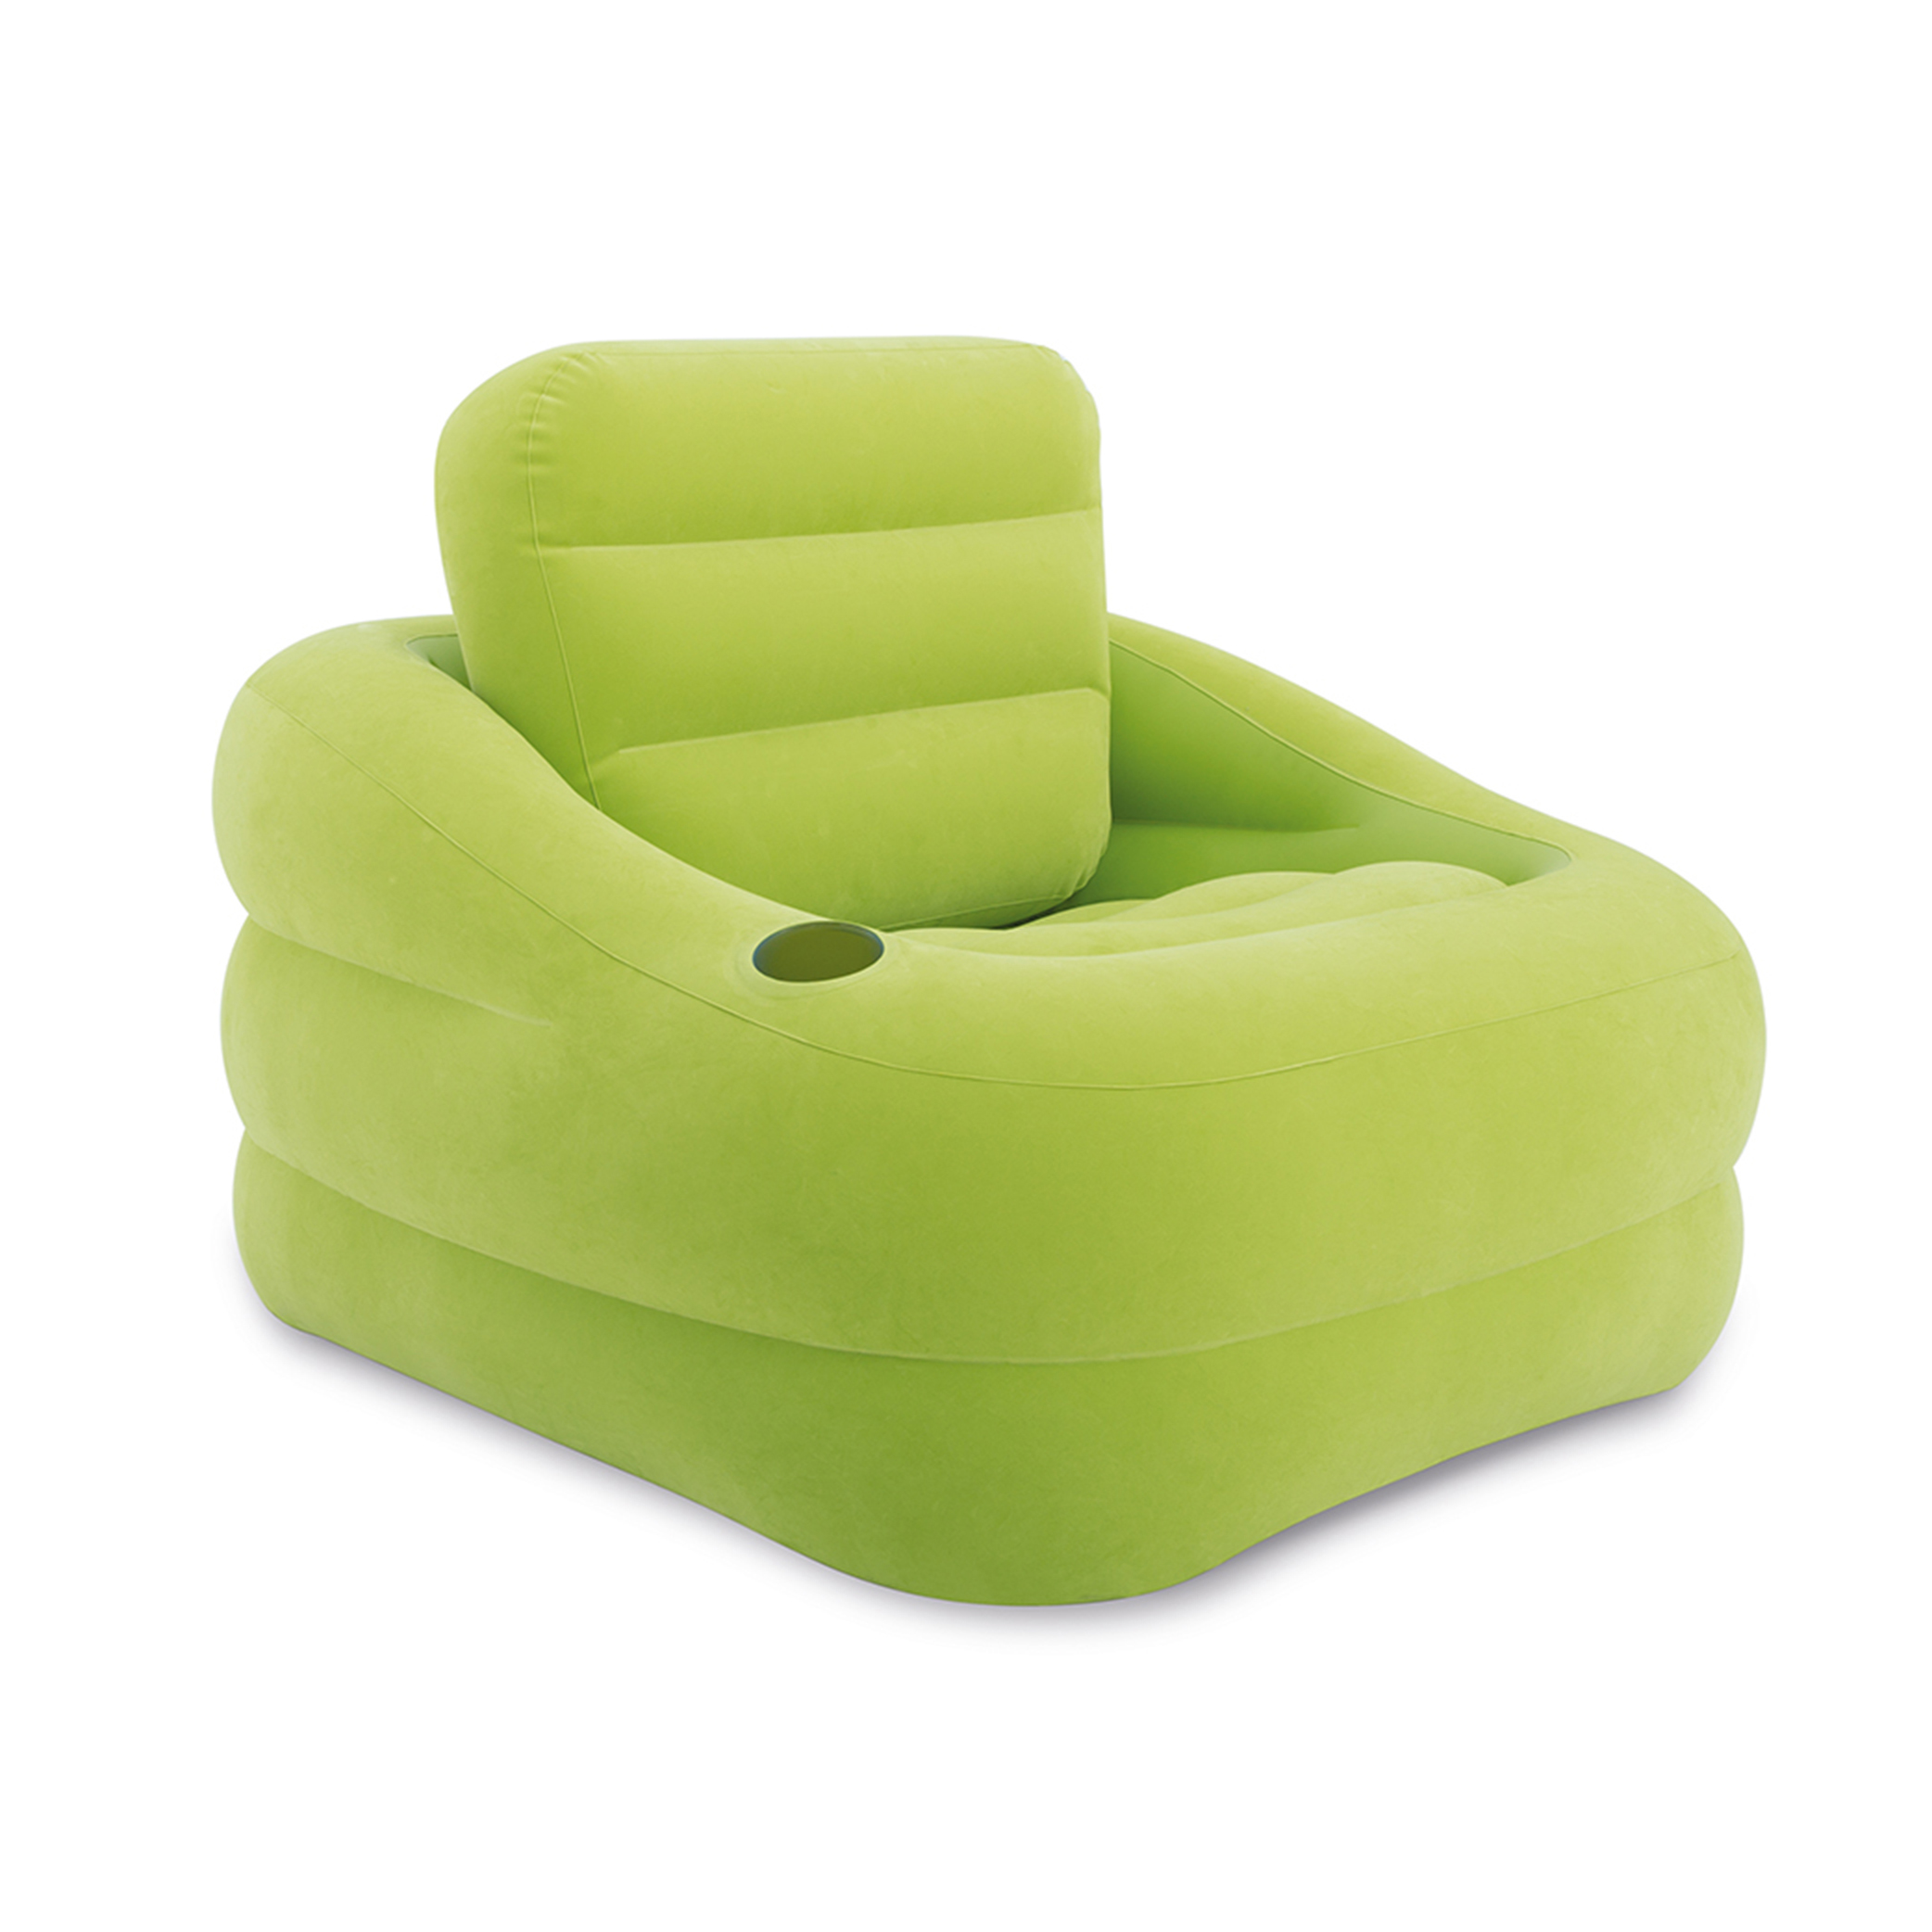 Inflatable Lawn Furniture: Intex Inflatable Indoor Or Outdoor Accent Chair With Cup